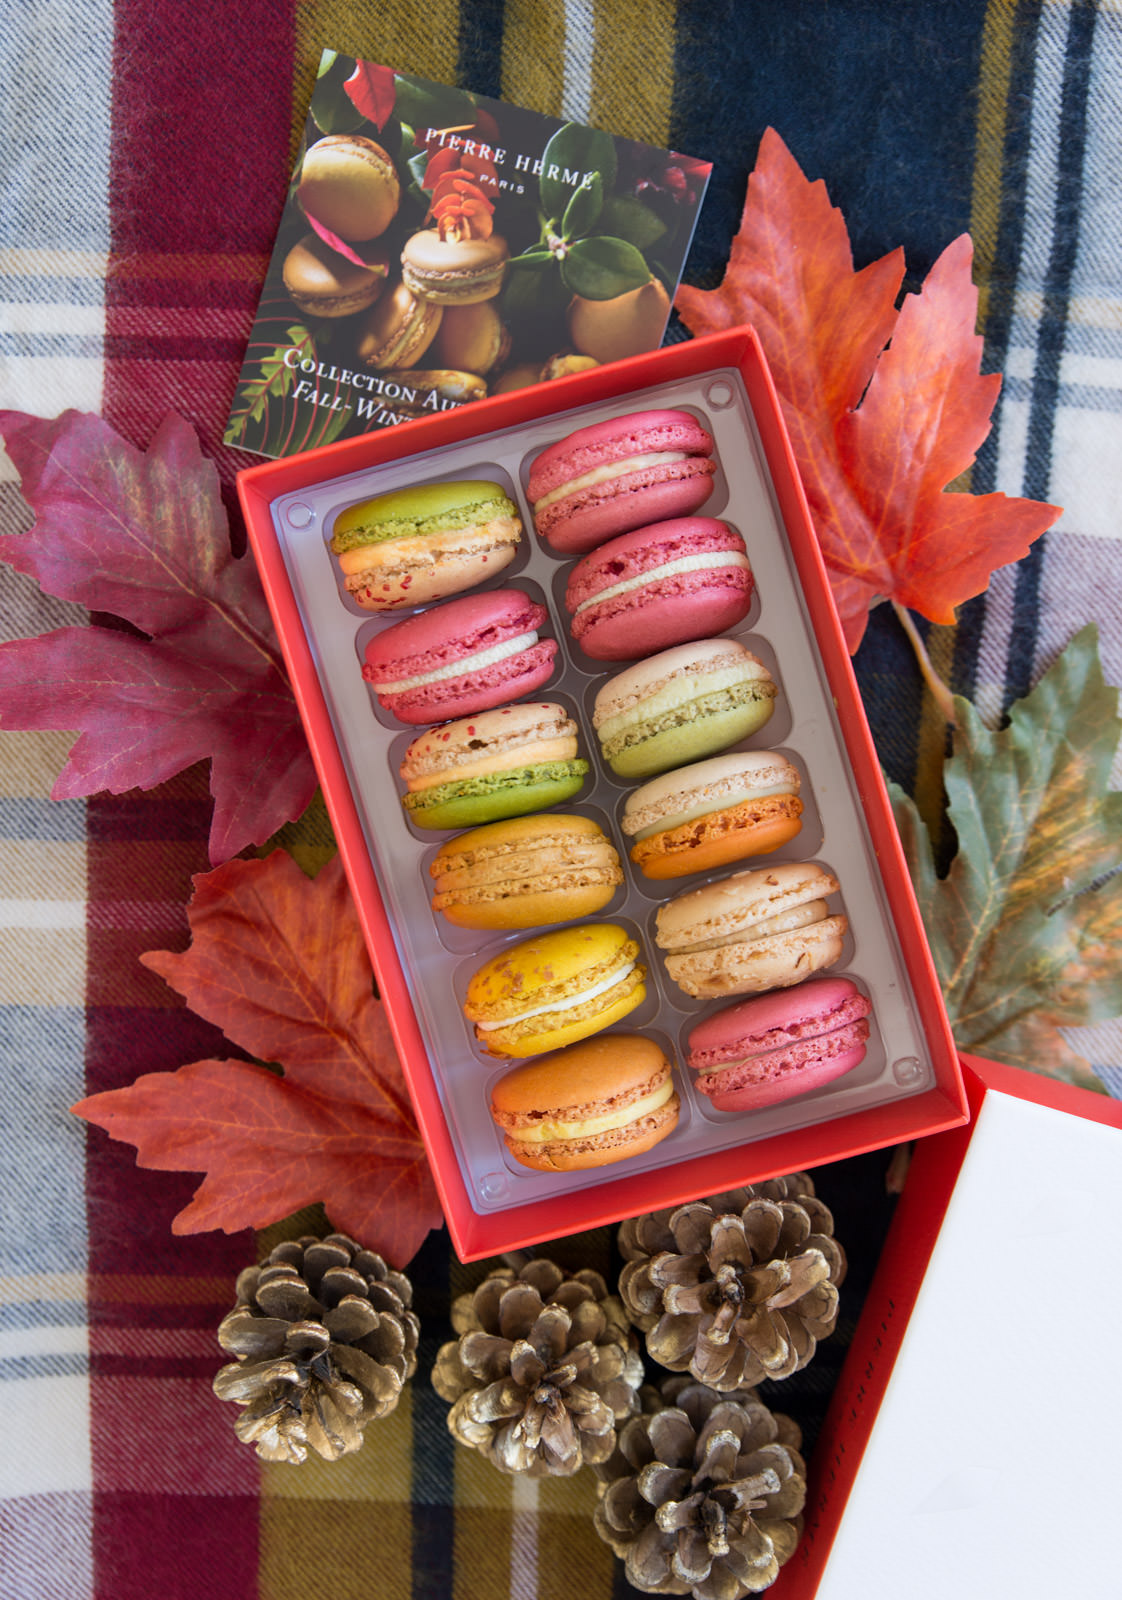 Blog-Mode-And-The-City-Lifestyle-Cinq-Petites-Choses-190-macarons-automne-pierre-herme